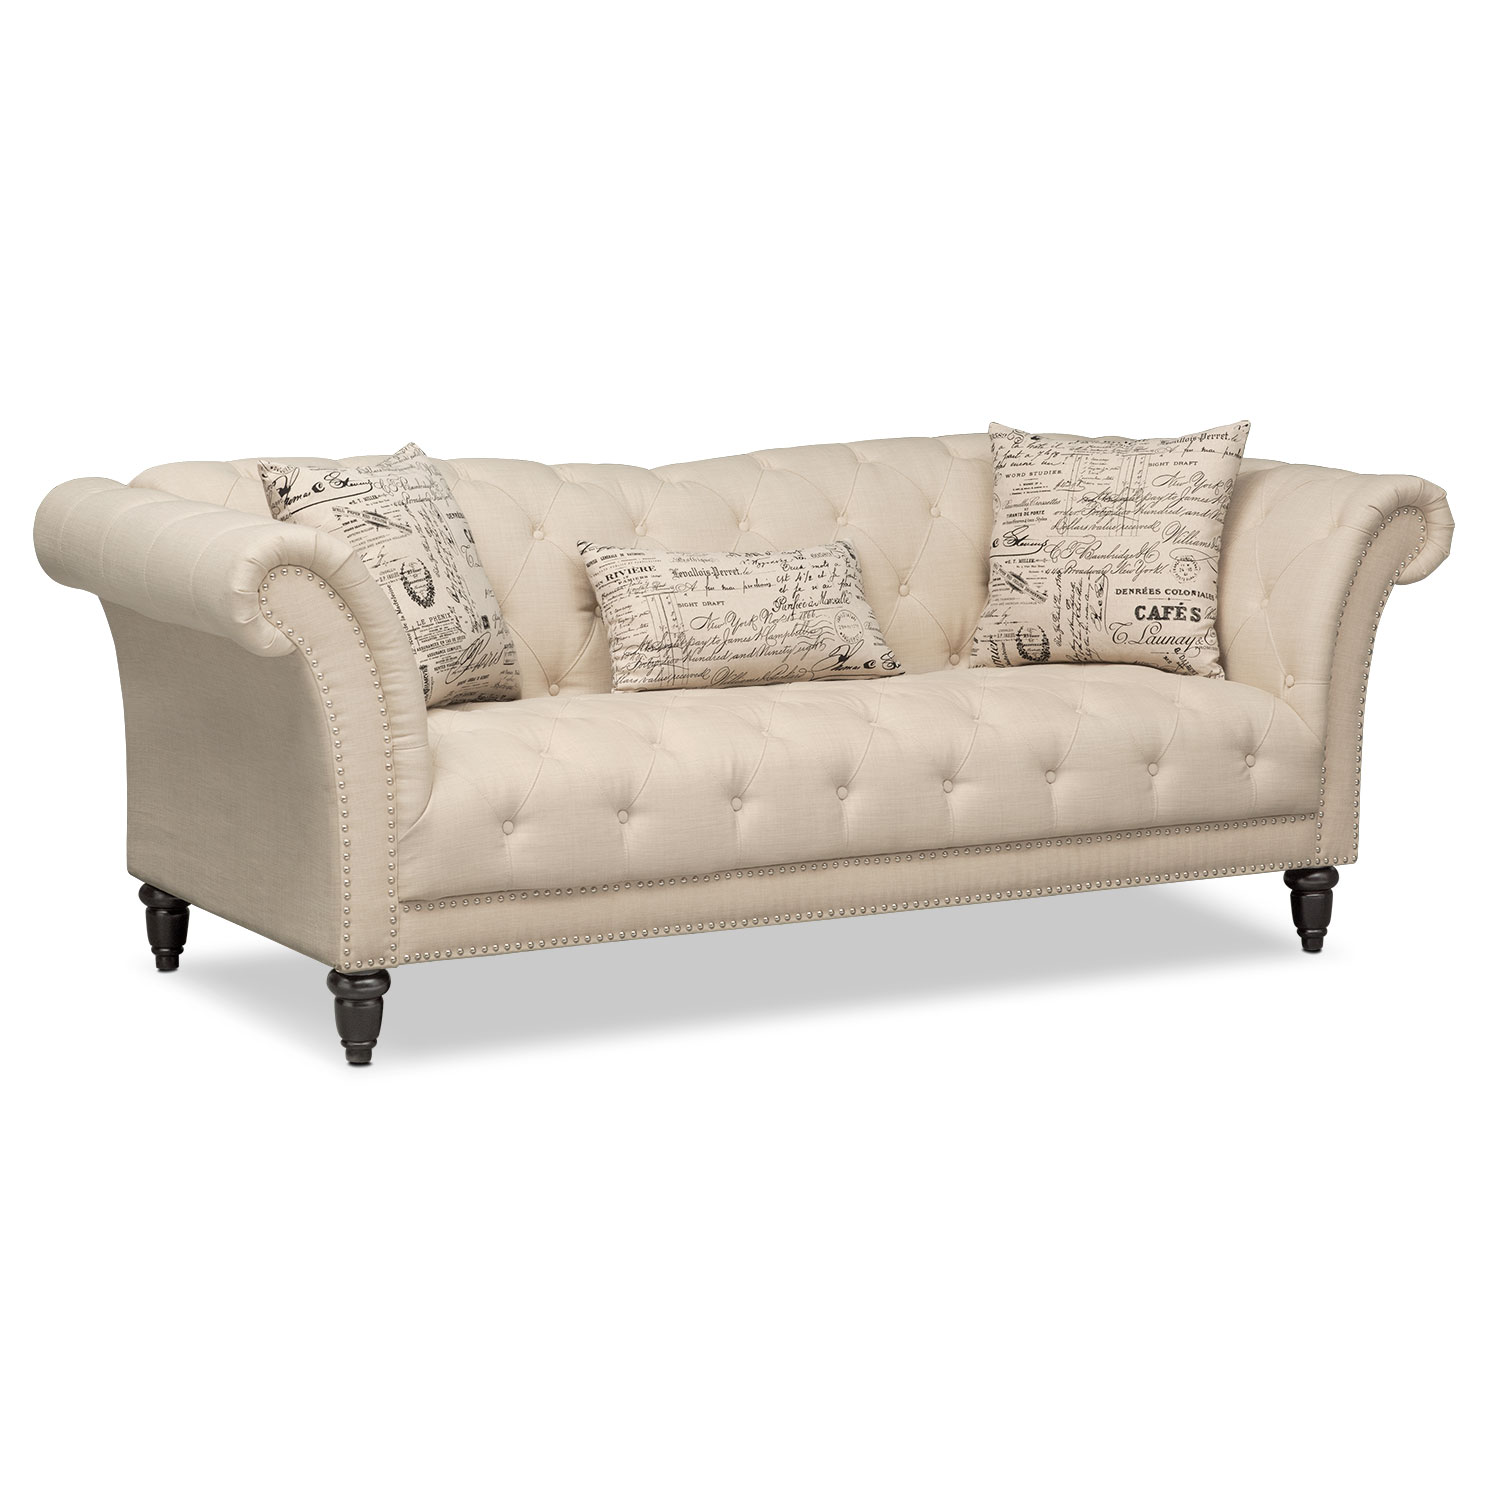 value city furniture couches Marisol Sofa | Value City Furniture and Mattresses value city furniture couches